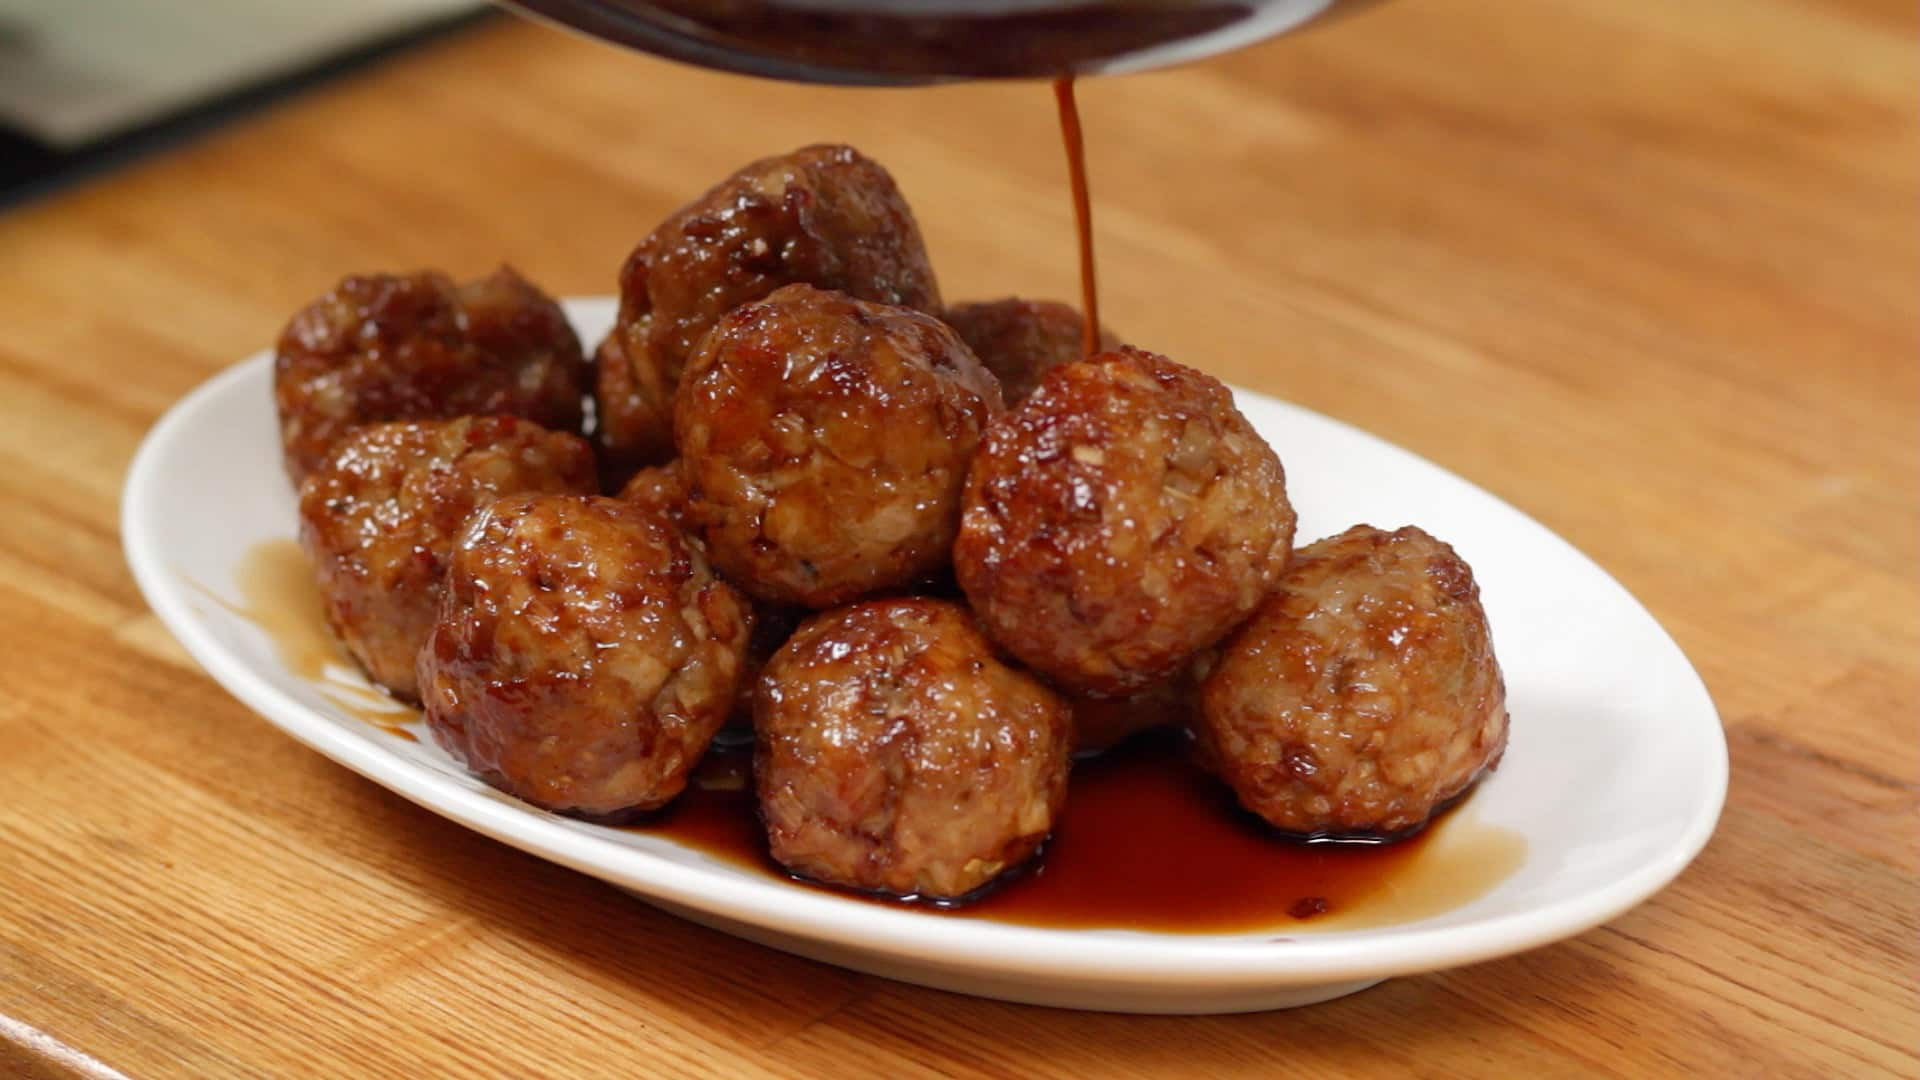 With meatball sandwiches, I generally serve a salad, relish or salsa to go with the meatballs: Chopped Greek salad for Greek meatballs (obviously), a simple coleslaw for Buffalo meatballs or baked meatballs with honey mustard, green salad for tomato cheese meatball subs, a fruity black bean salsa to go with BBQ meatball sliders.